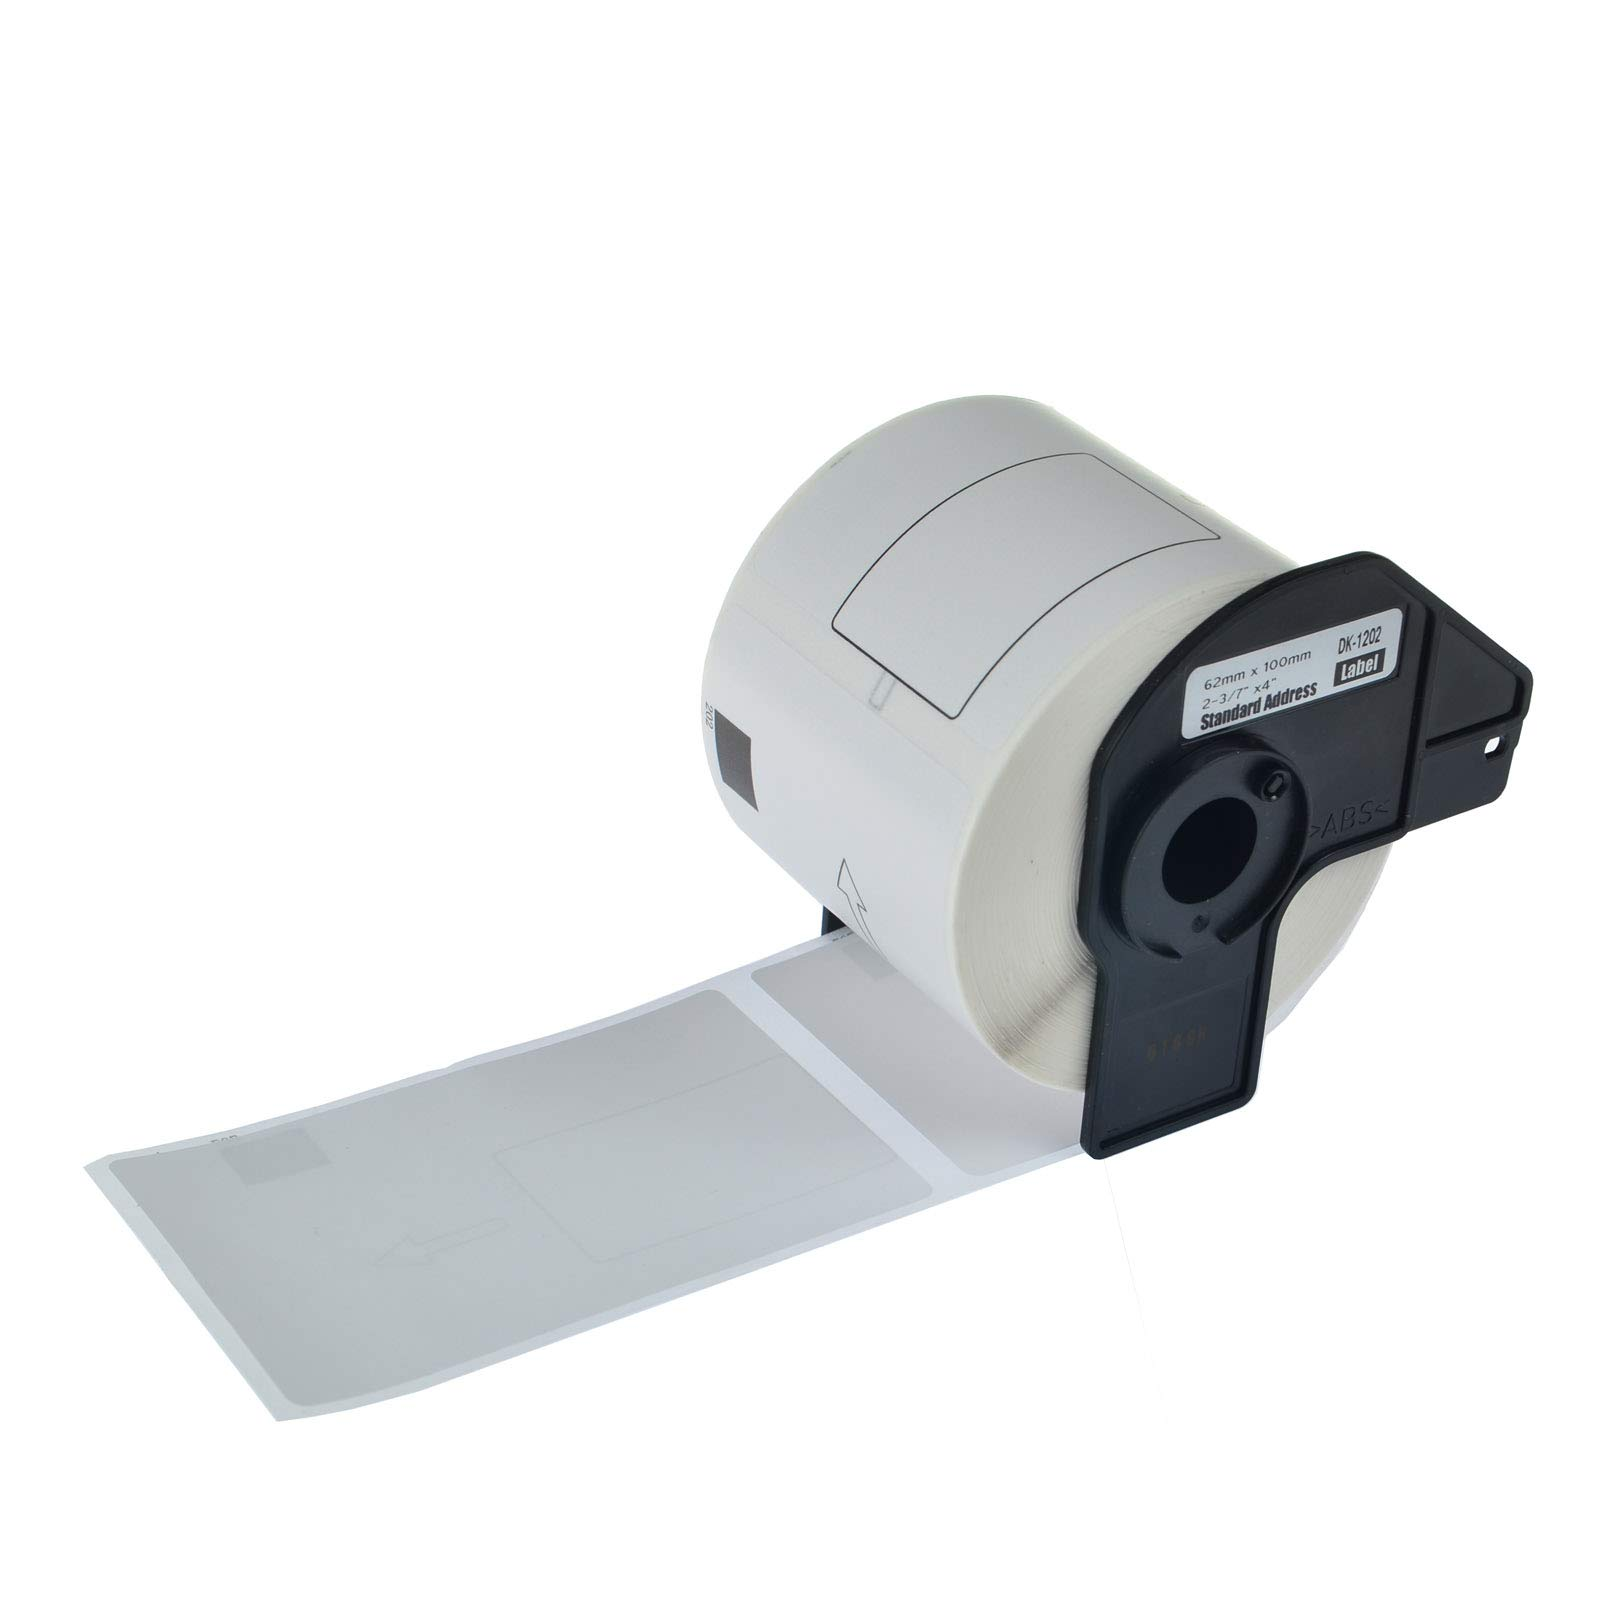 KCYMTONER 6 Rolls DK-1202 Compatible Continuous Paper Labels 2-3/7 Inches (62mm) by 100mm (4''), BPA Free, Strong Adhesive, Use in Brother P-Touch QL-500 QL-710W QL-1050 QL-1050N QL-1060N and More by KCYMTONER (Image #3)